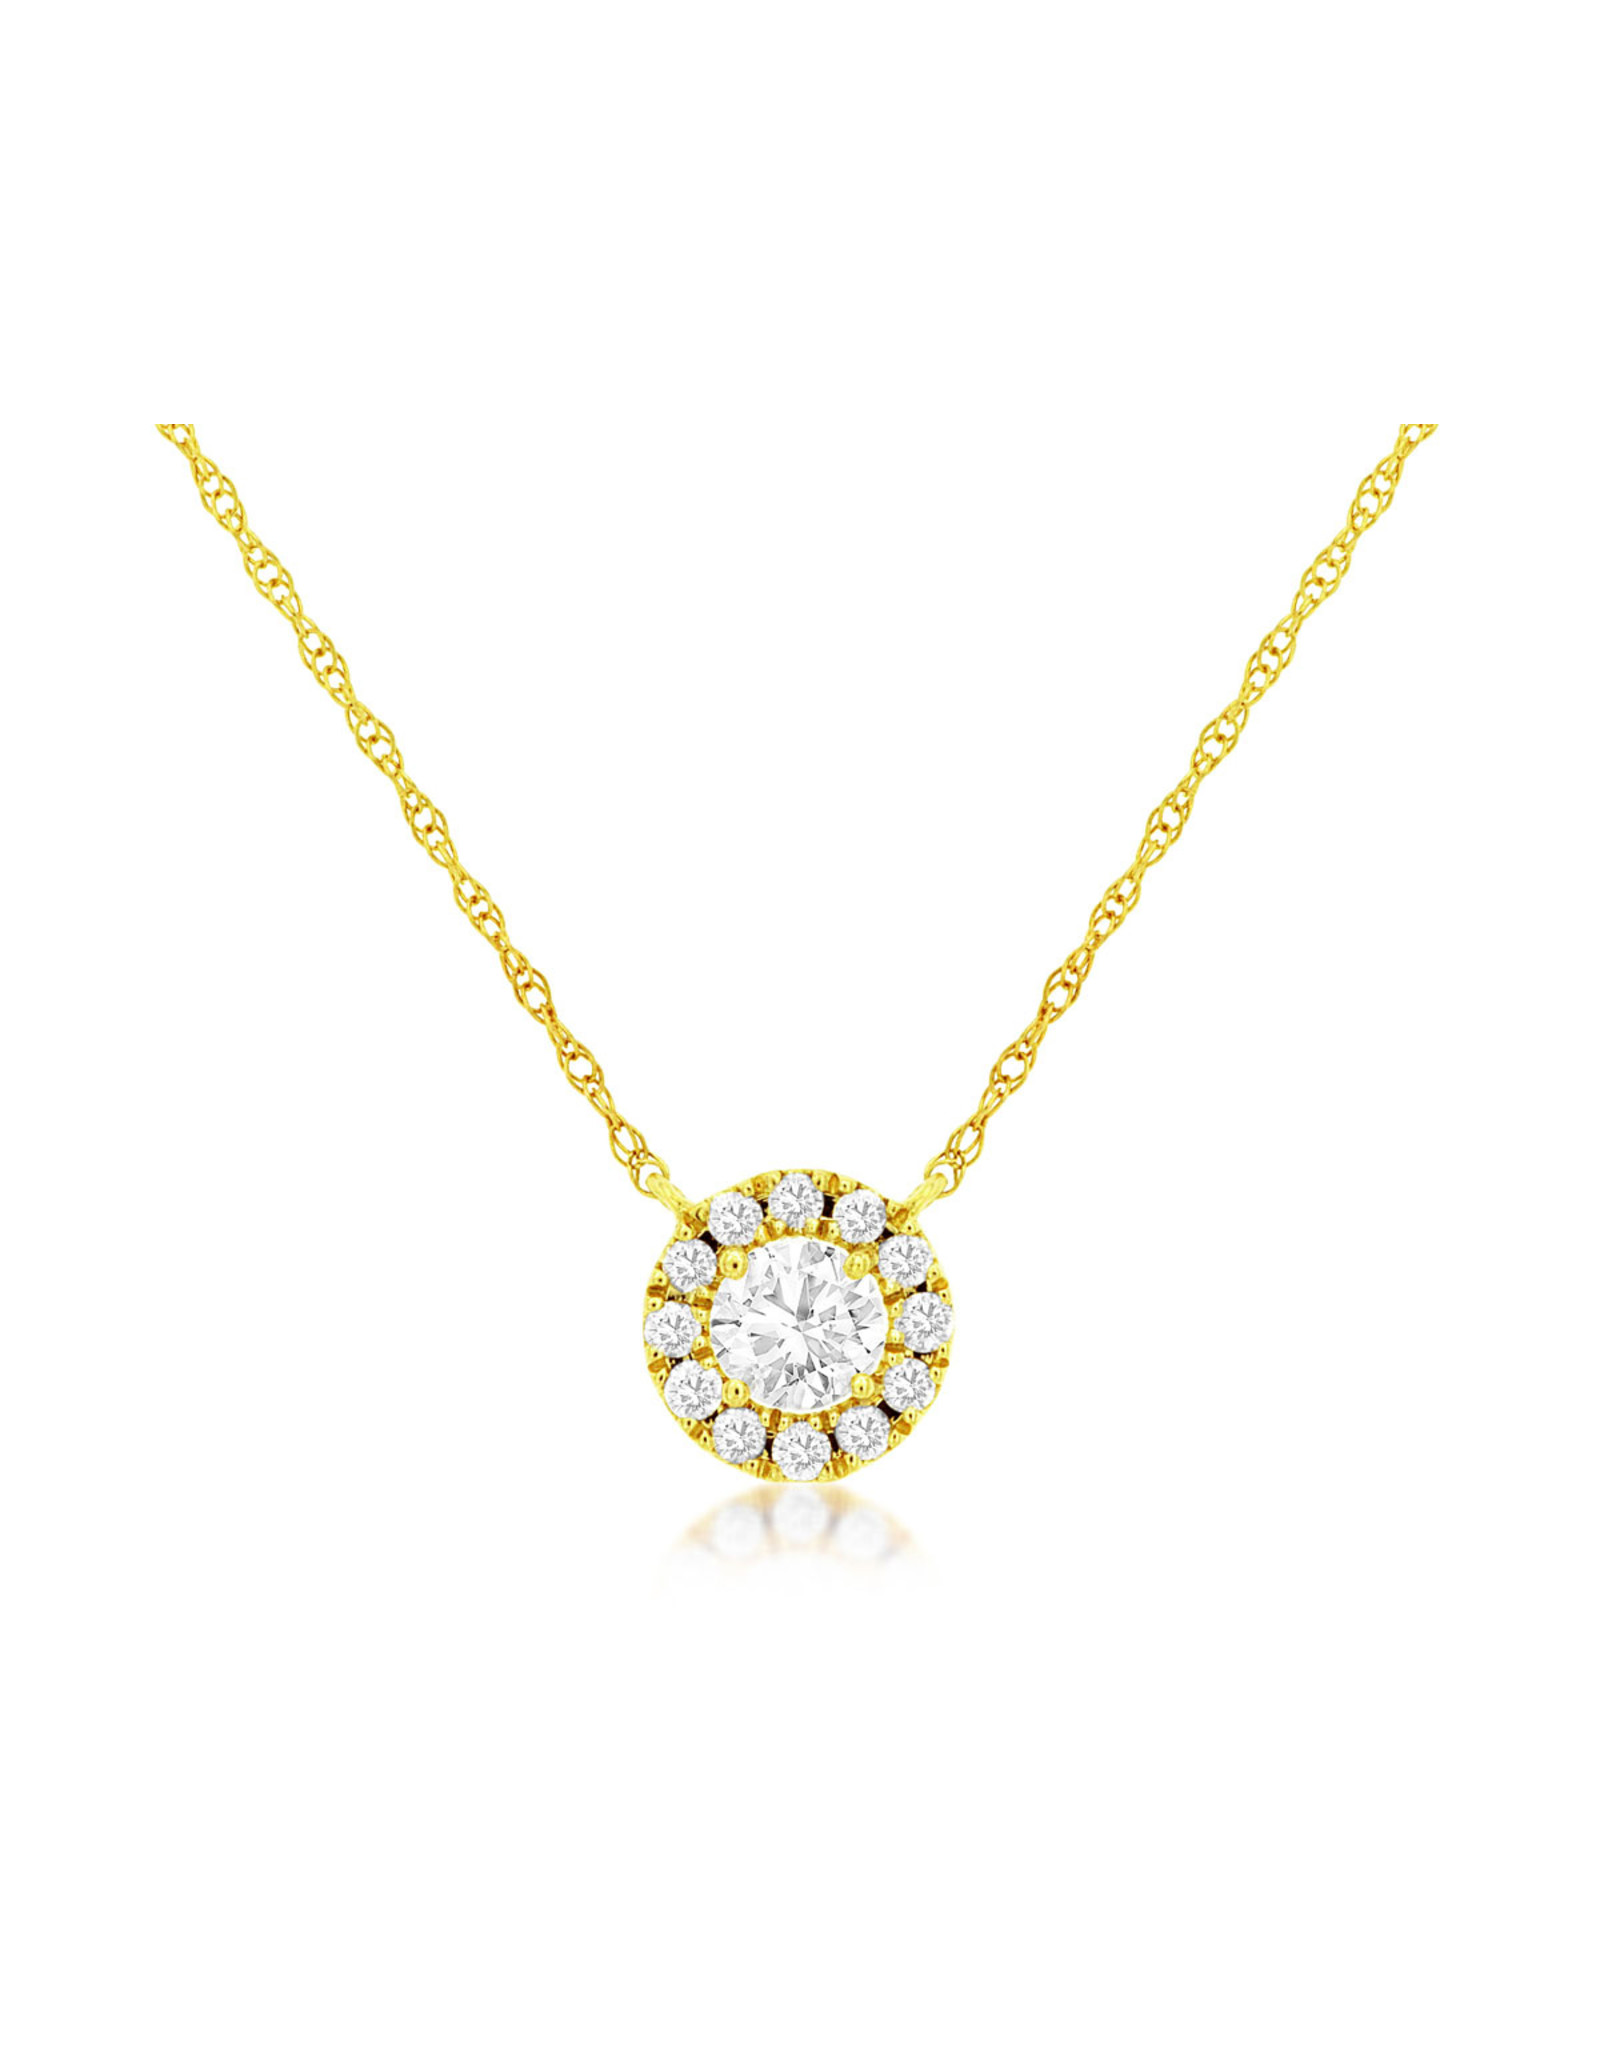 14K Yellow Gold Simple Diamond Halo Necklace, D: 0.37ct